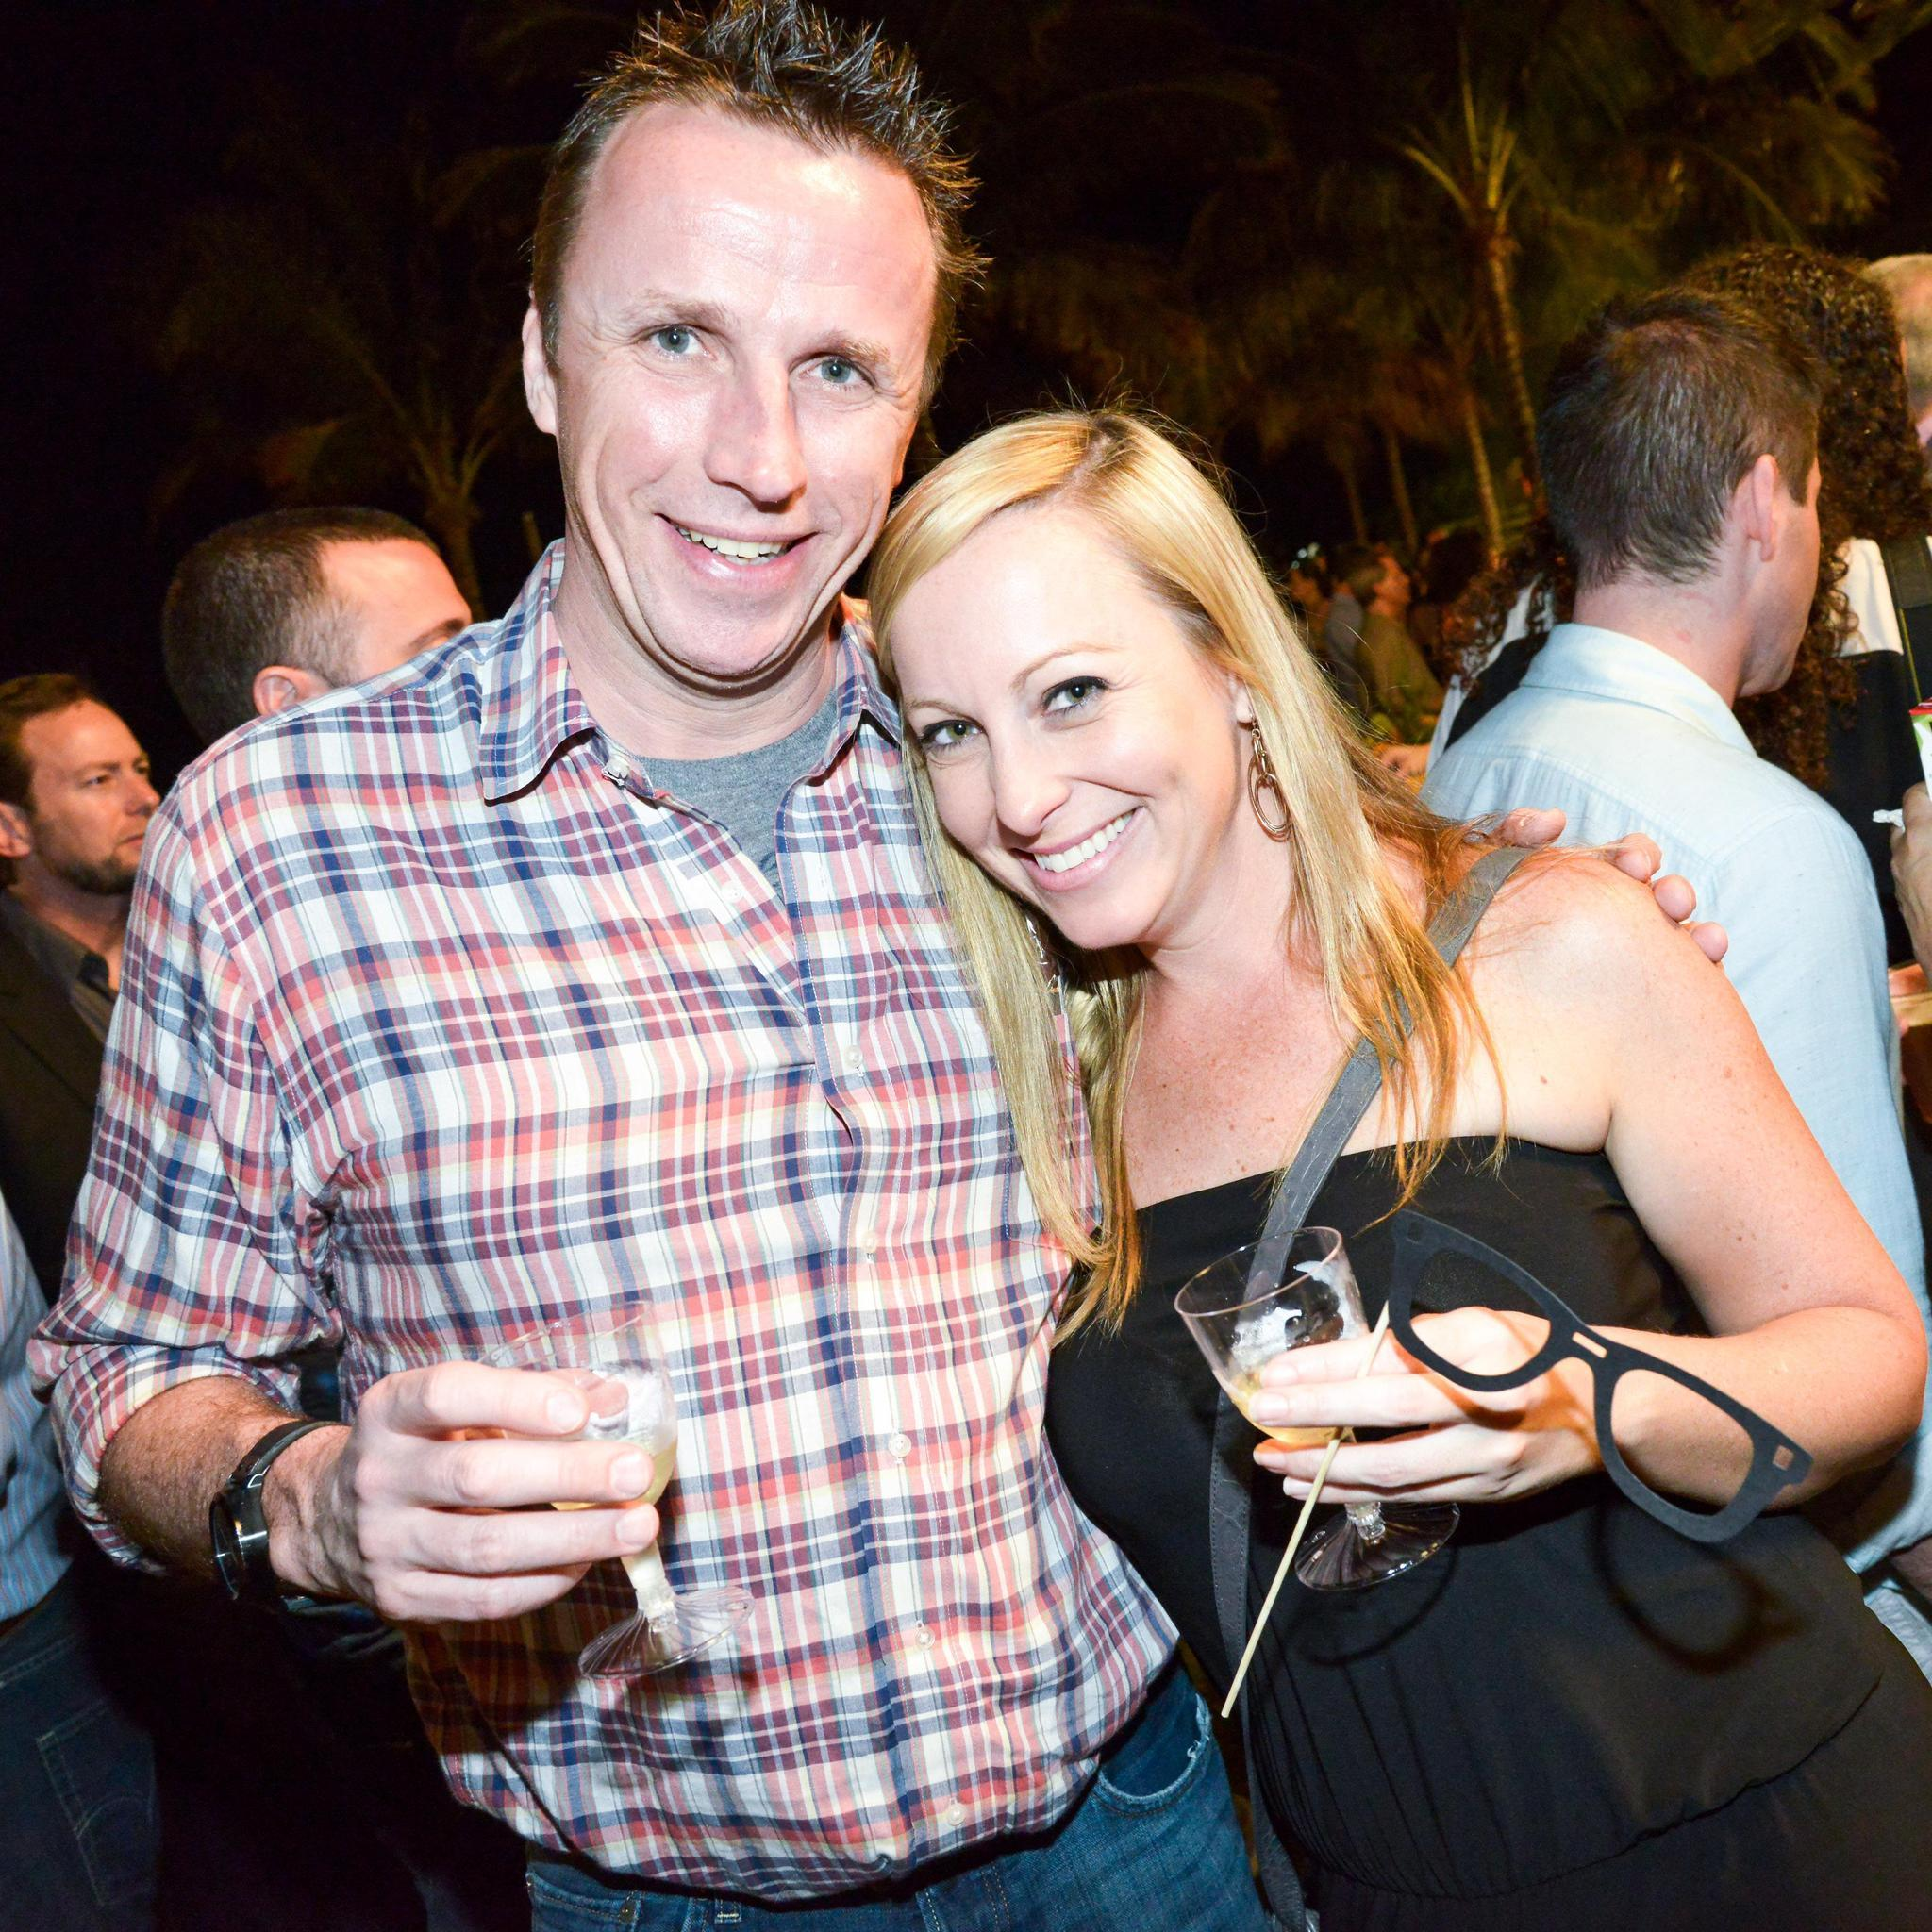 Celeb-spotting at SoBe Wine and Food Festival - Marc Murphy